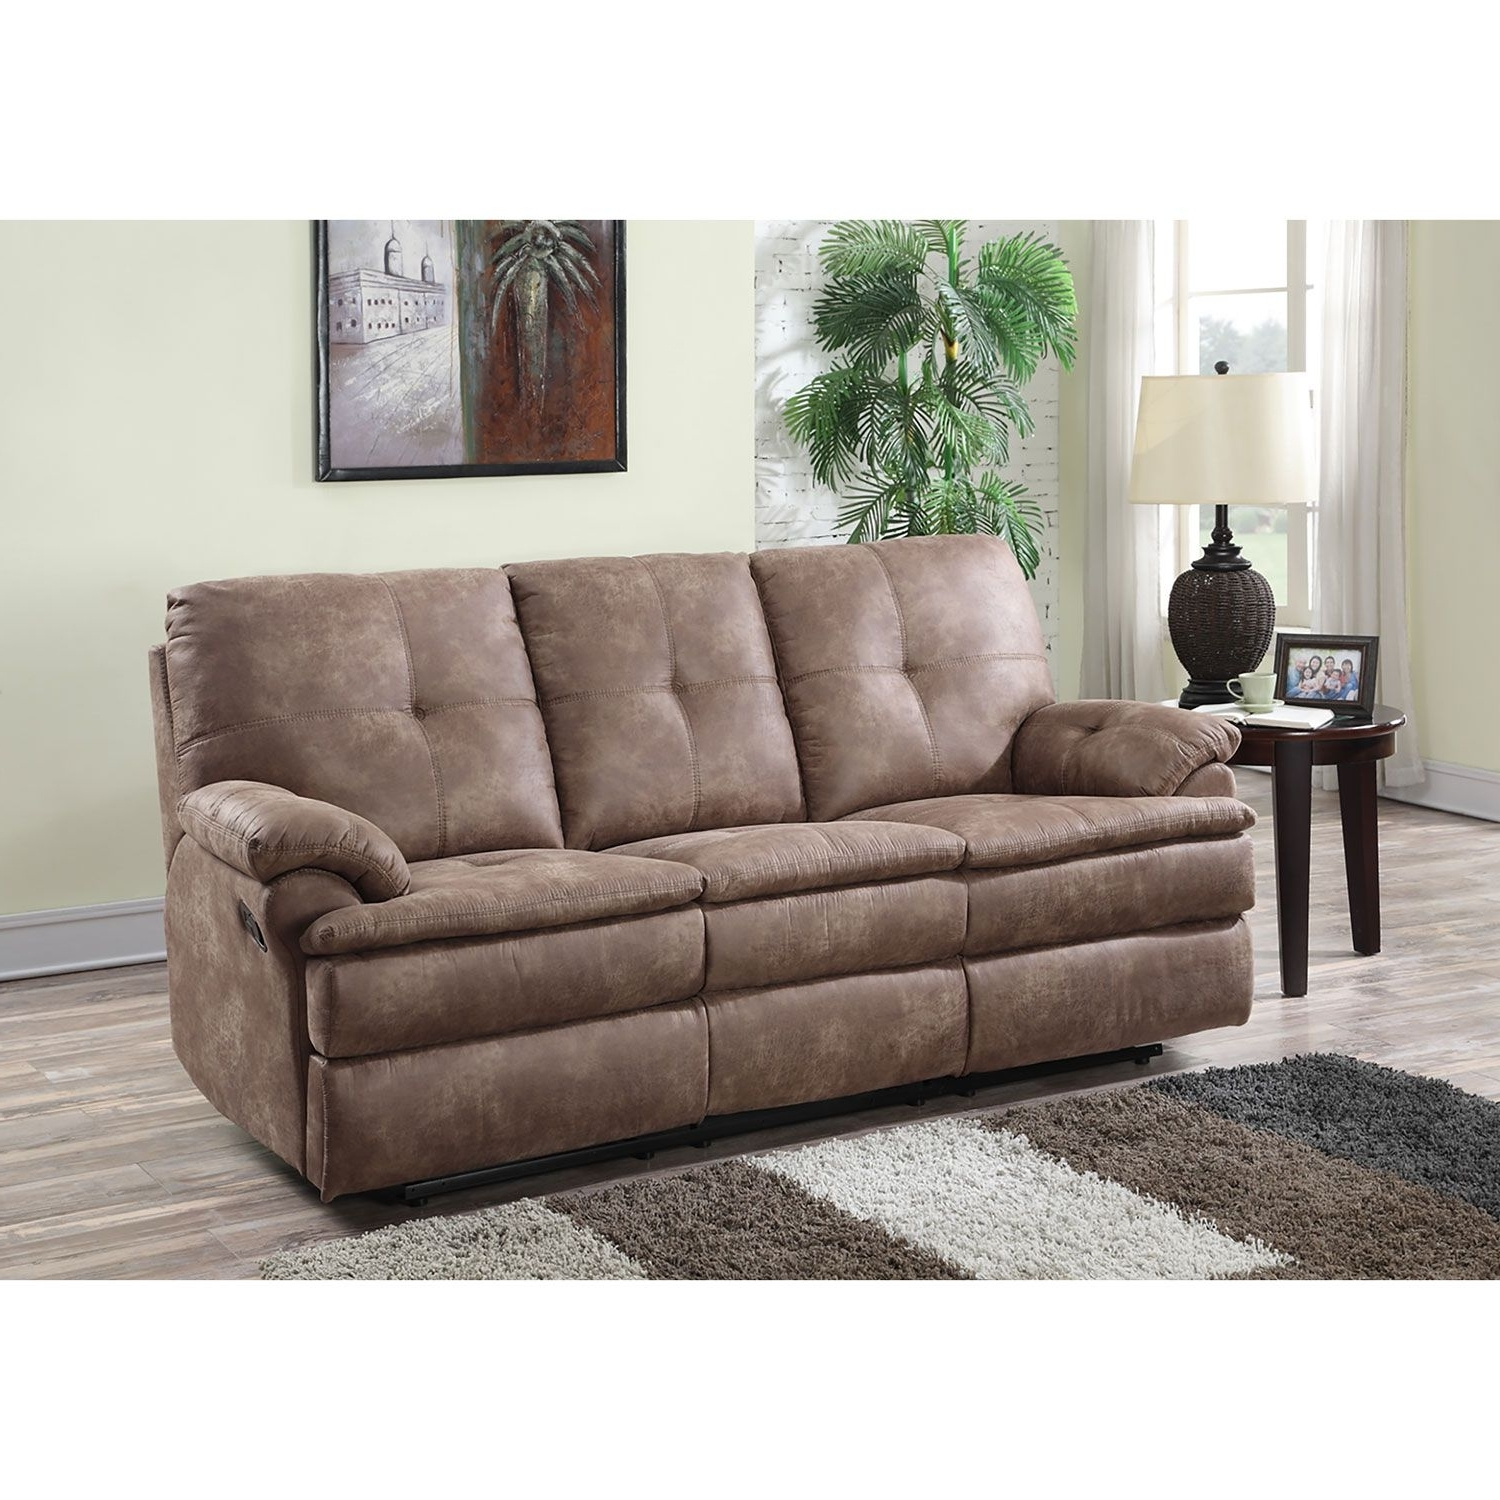 Sofa : Two Seater Fabric Recliner Sofa Fabric Reclining Sofa And Inside Fashionable Sams Club Sectional Sofas (View 18 of 20)